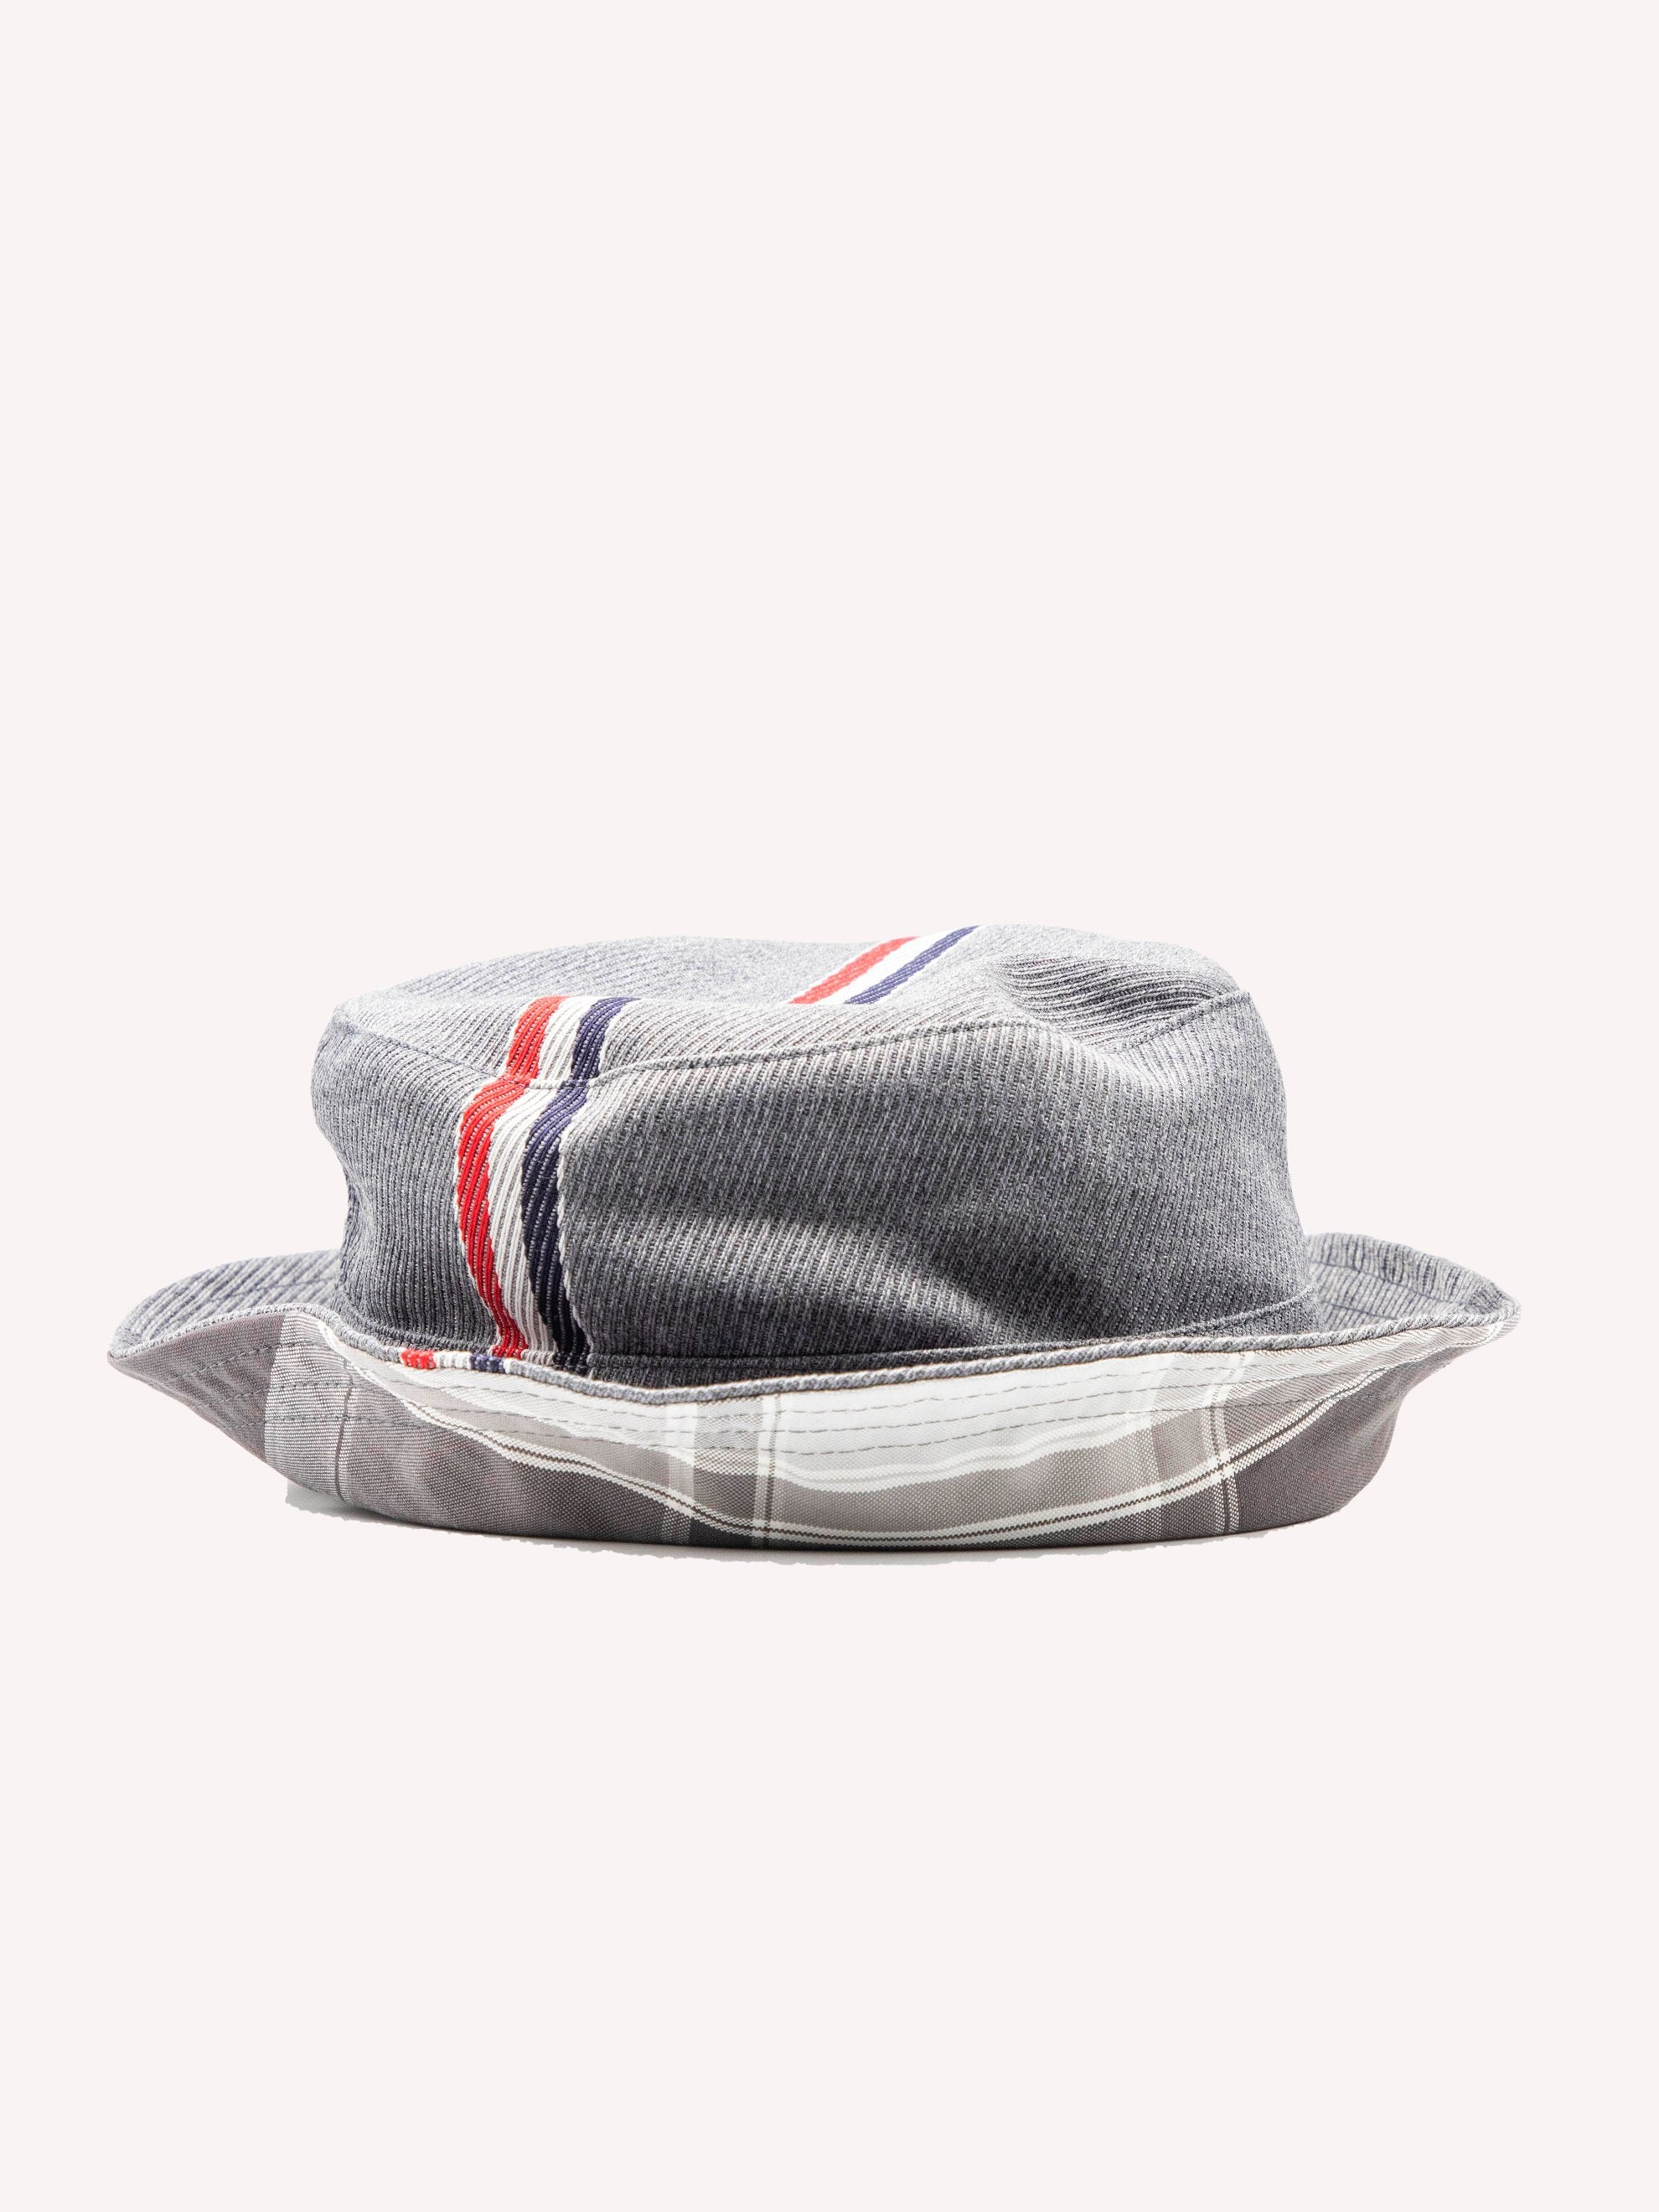 Med Grey Bucket Hat W/ Lining In Funmix In School Uniform Twill 3